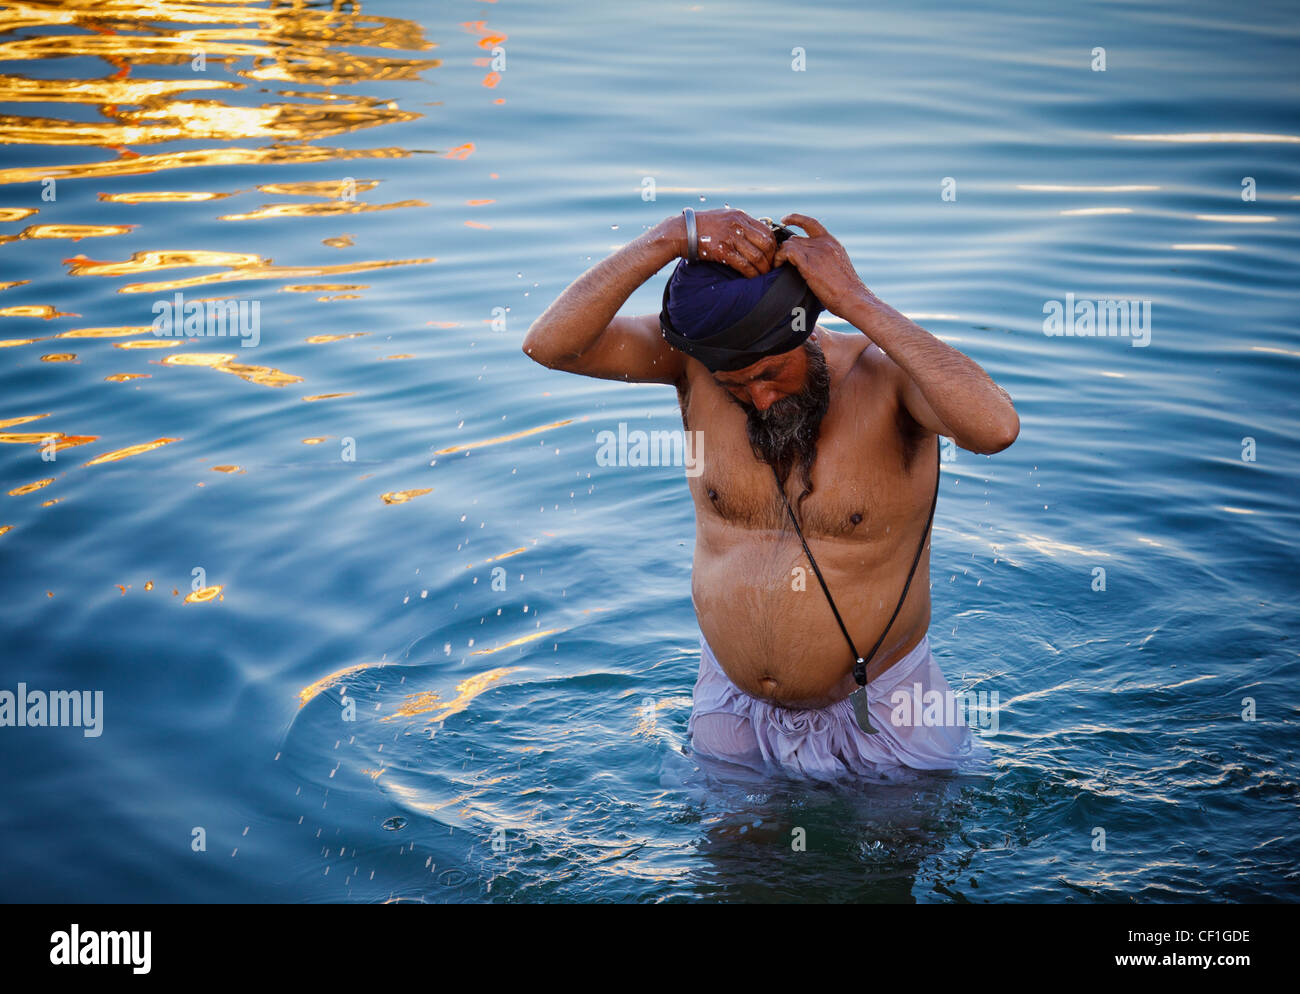 A Sikh man takes a bath in Amrit Sarovar, the pool surrounding the Golden Temple of Amritsar, Punjab, India Stock Foto